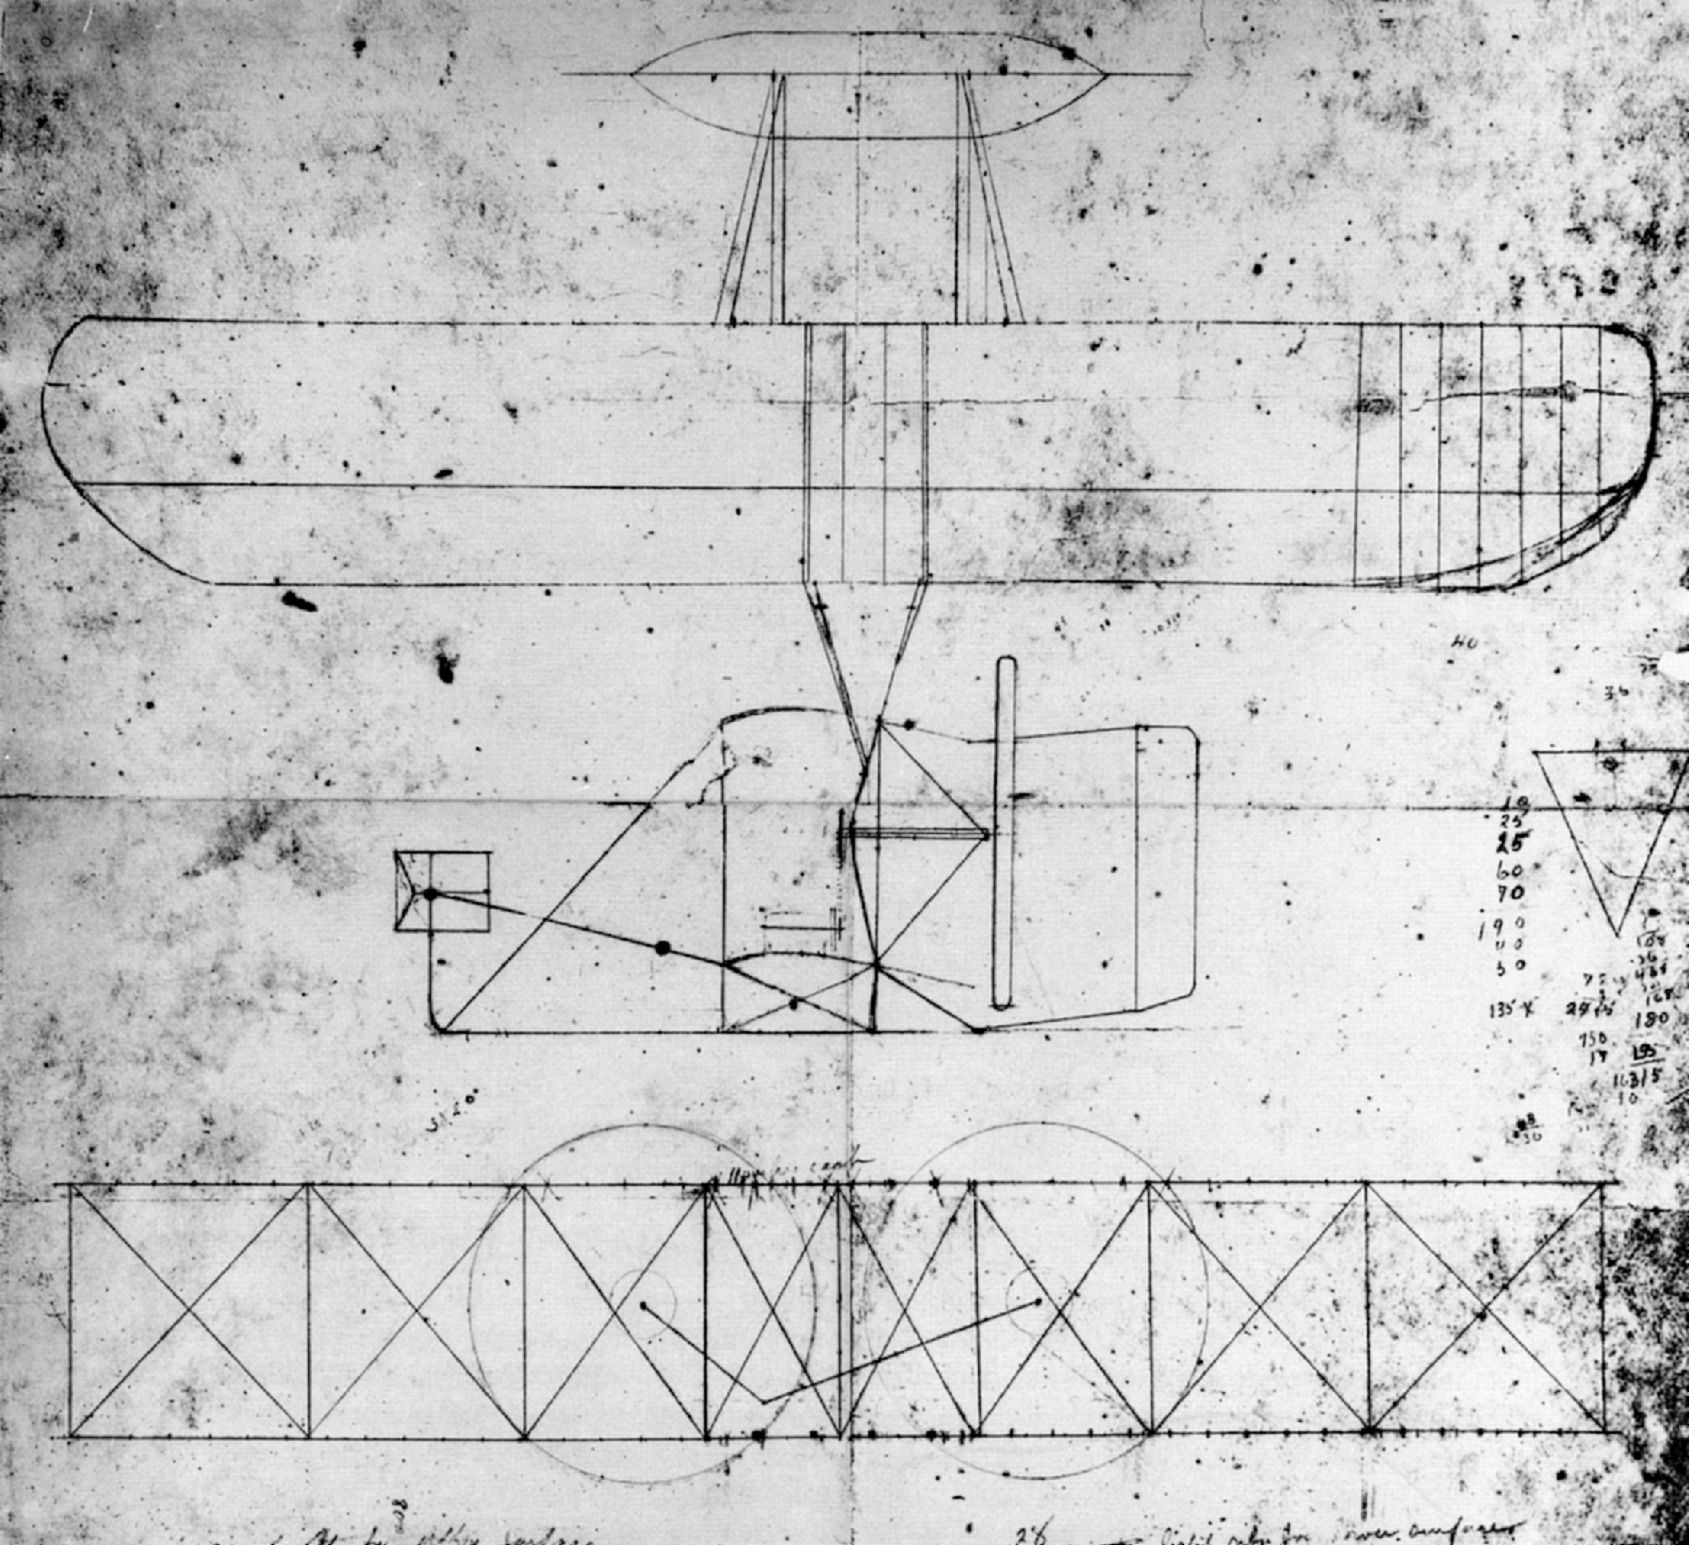 Wright brothers original drawing 1903 flyer google search local could we cover the walls with either the blueprints or patent applications of inventions wright brothers sketch of the flyer 1903 malvernweather Images